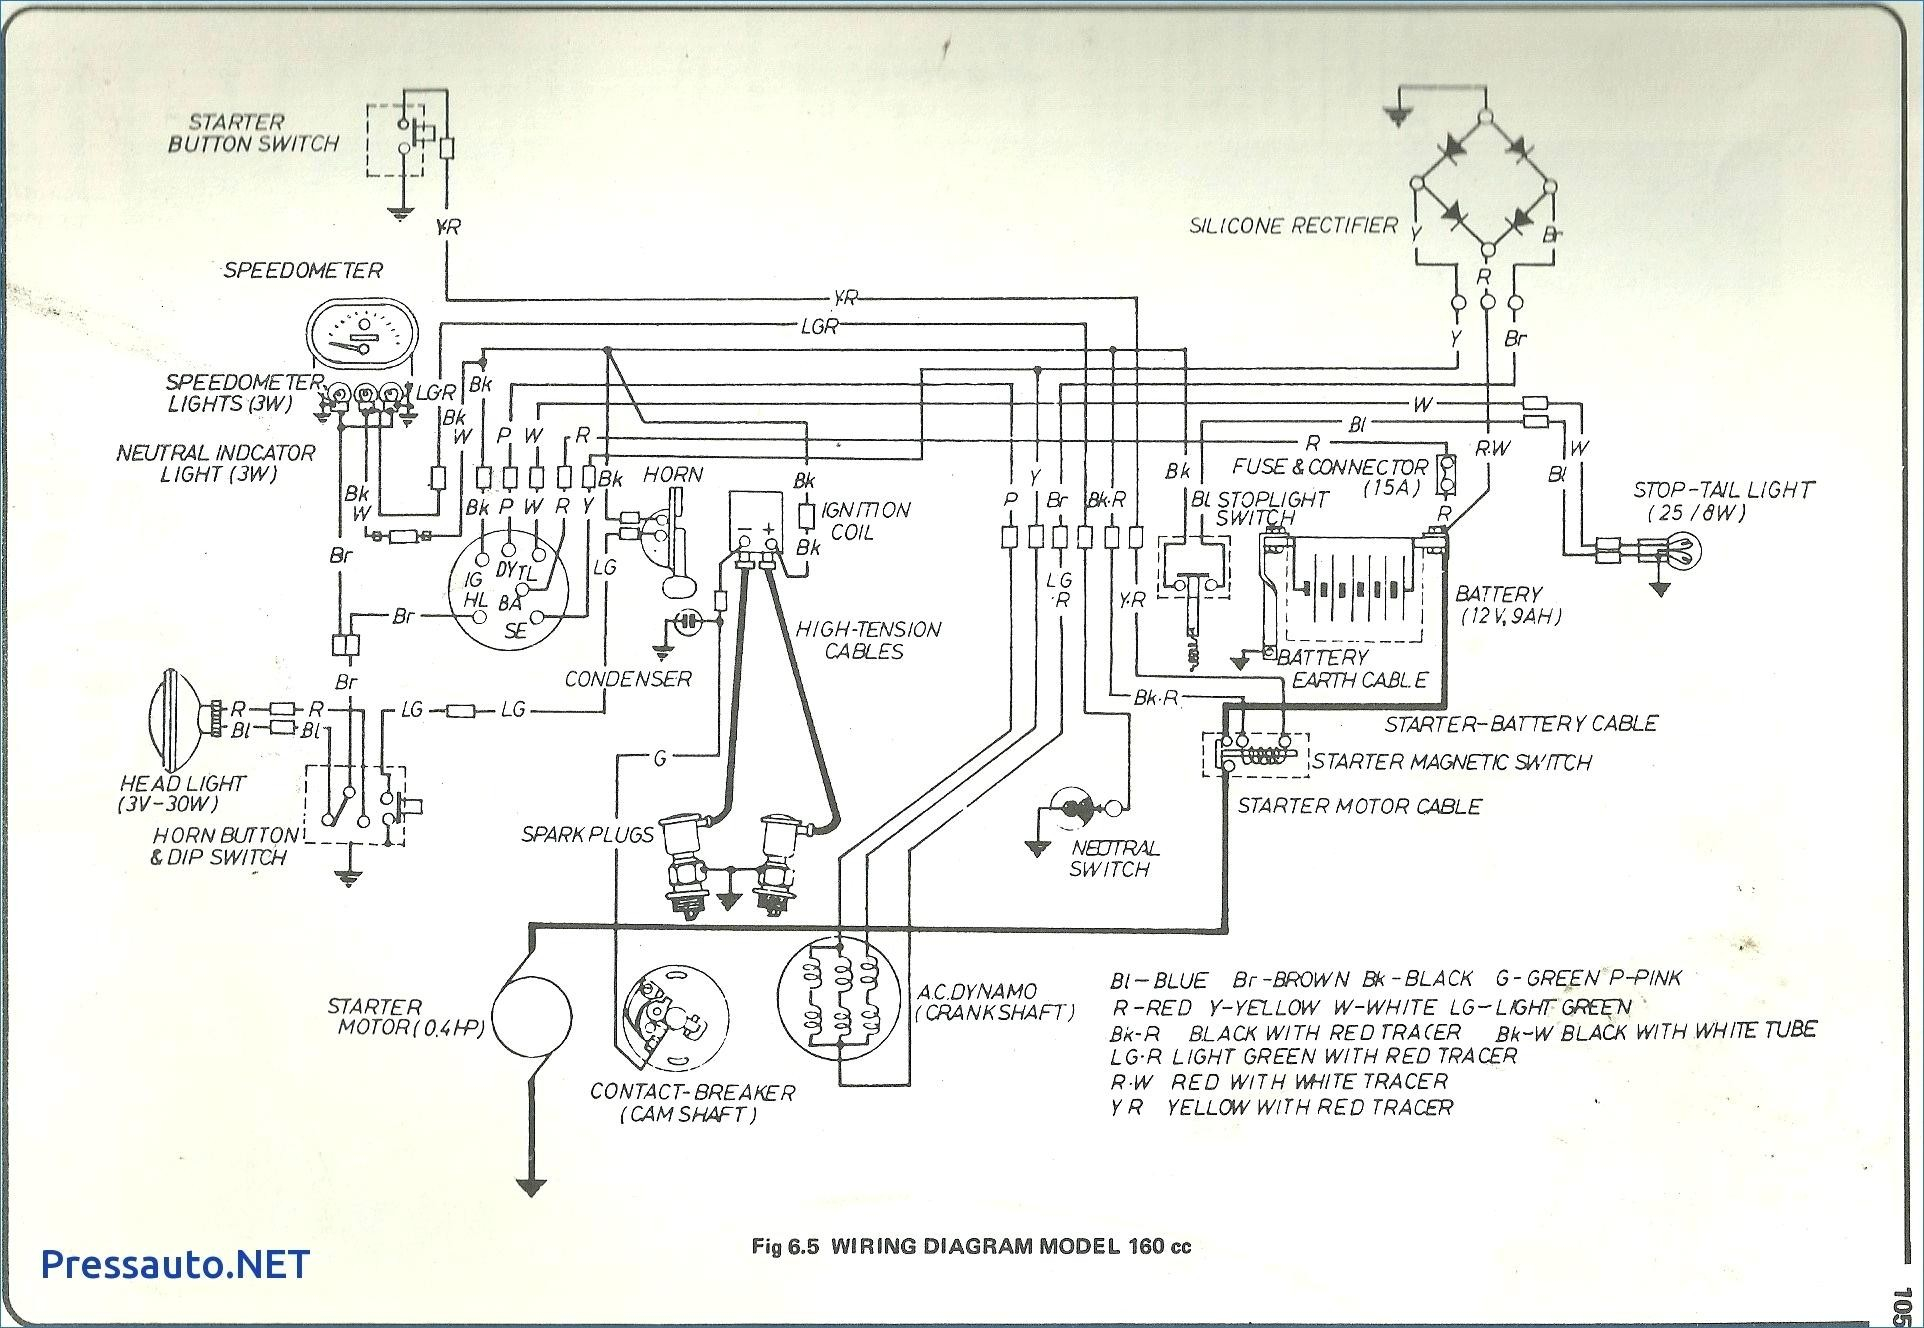 speed queen dryer wiring diagram Collection-Dryer Wiring Diagram 3 Prong Hook Up Speed Queen 220 Plug Tumble And 19-k